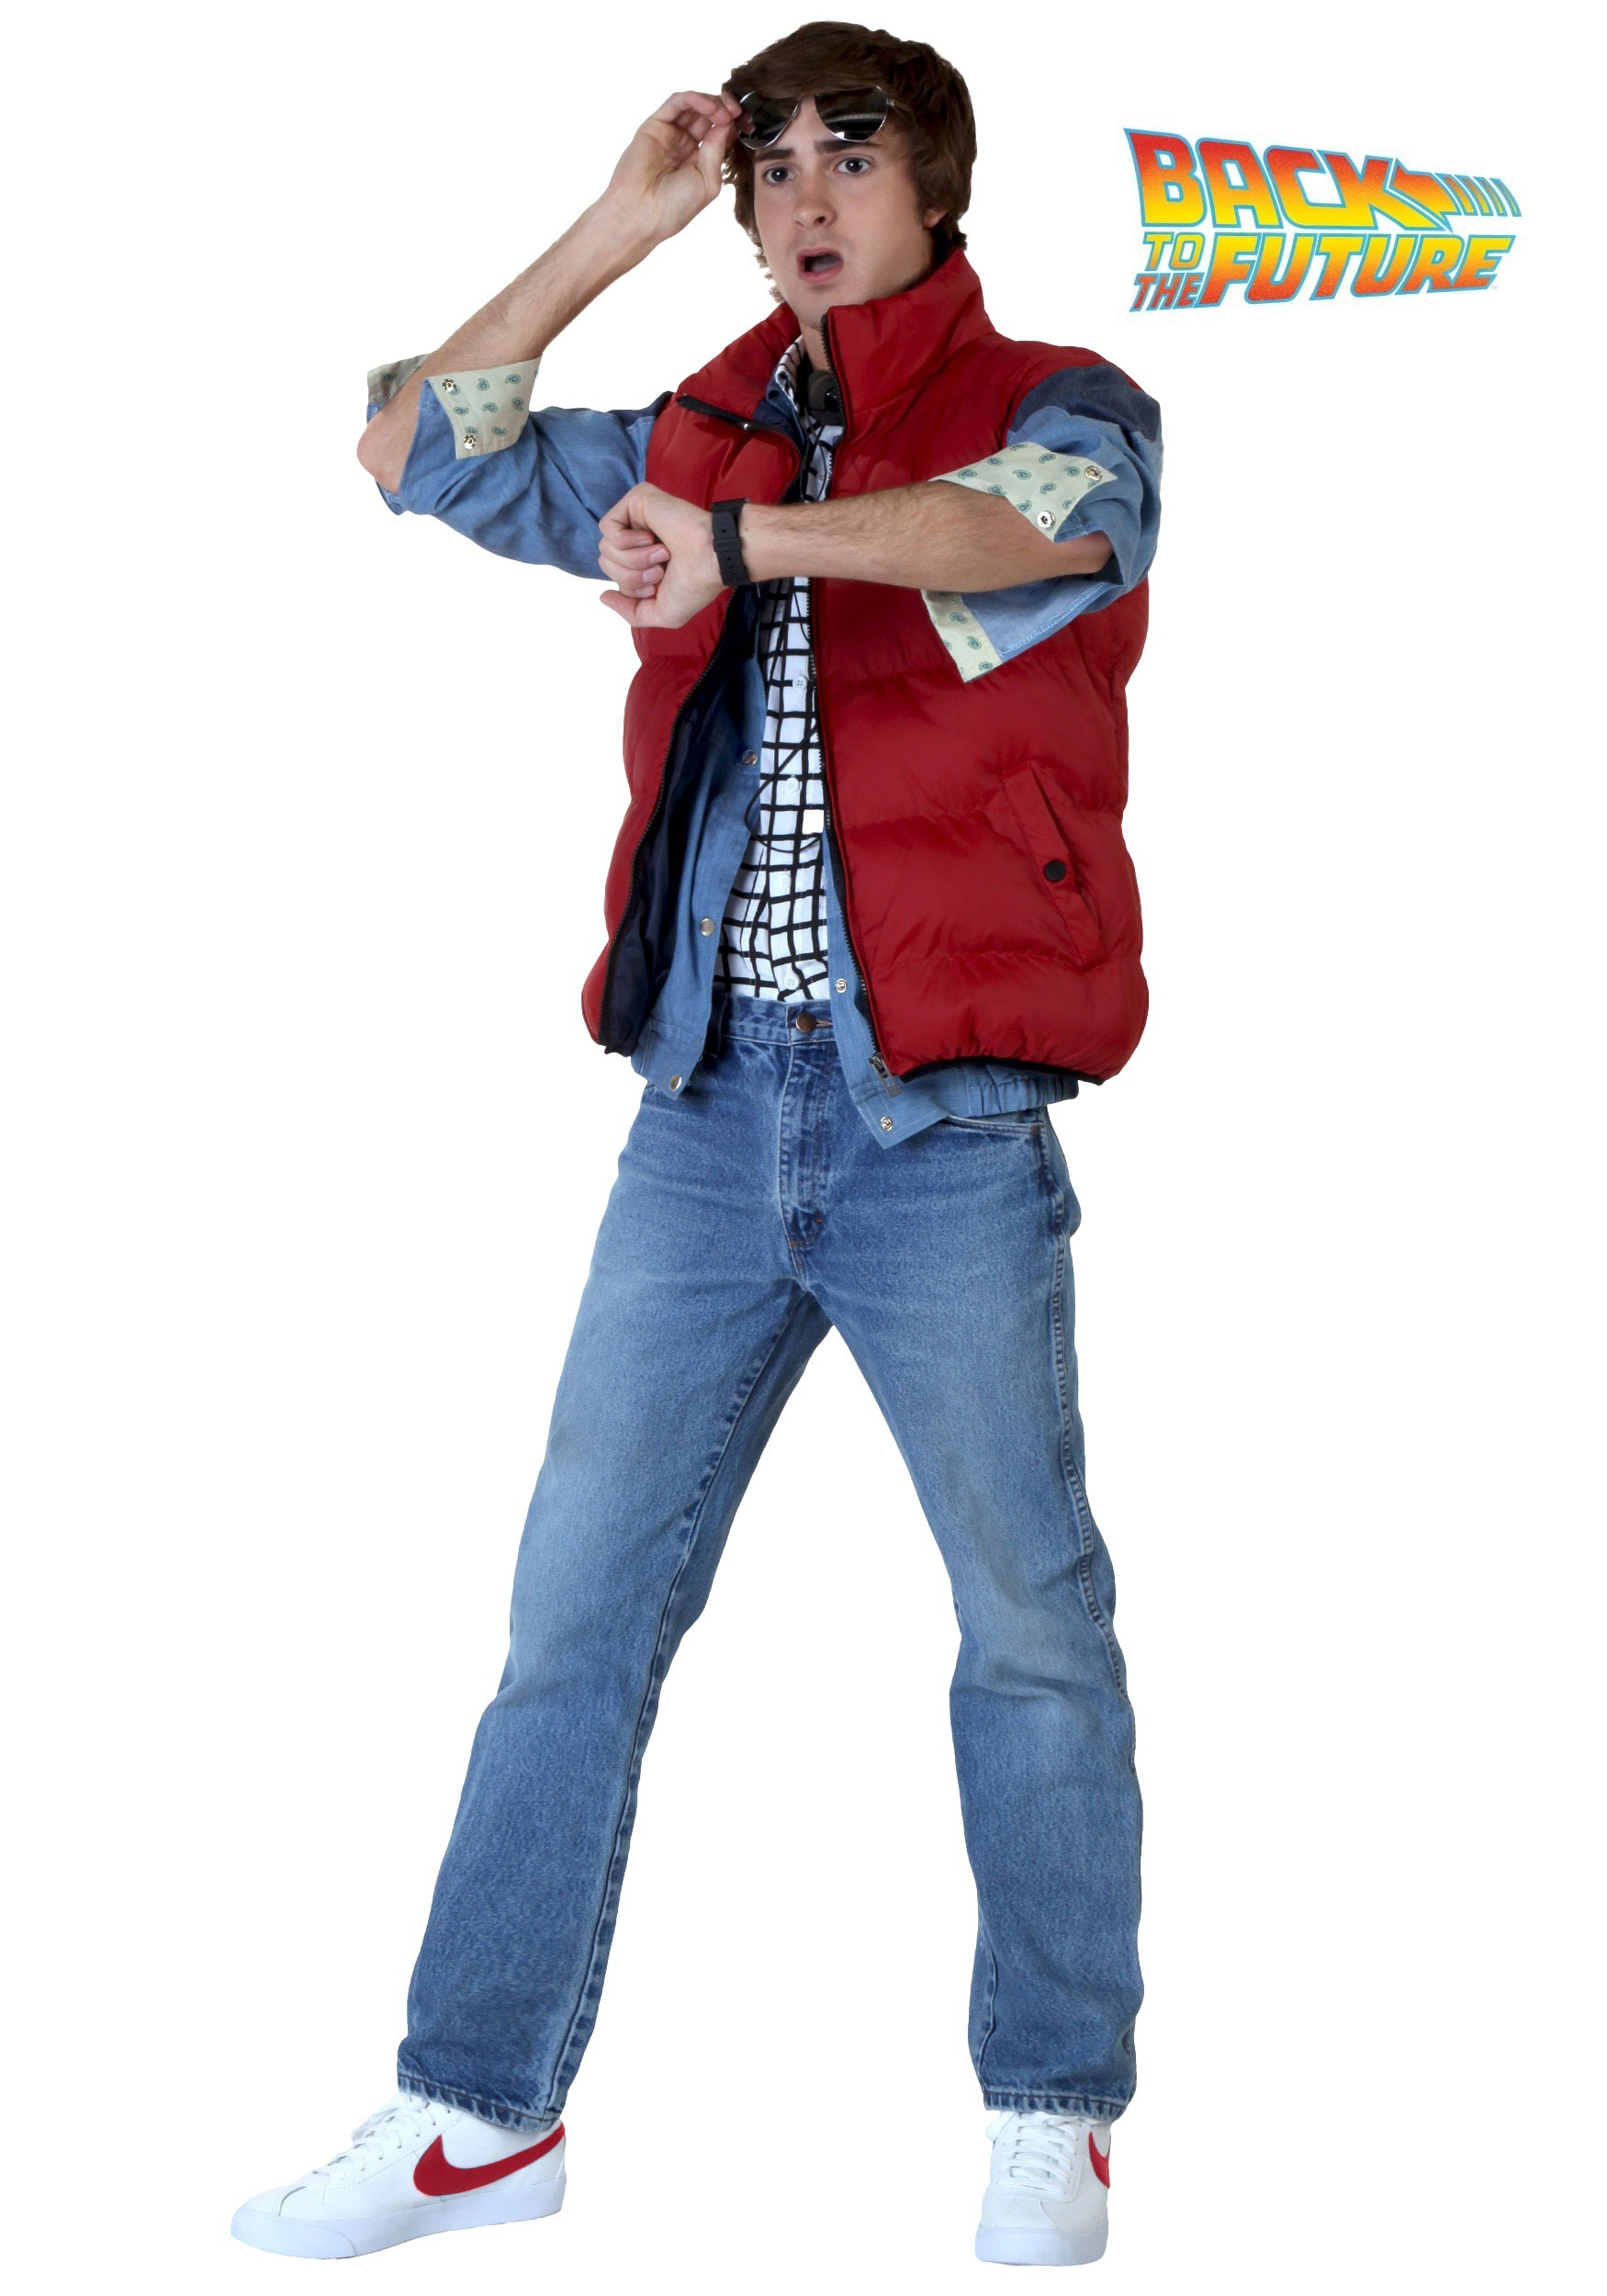 Back to the Future Marty McFly Costume